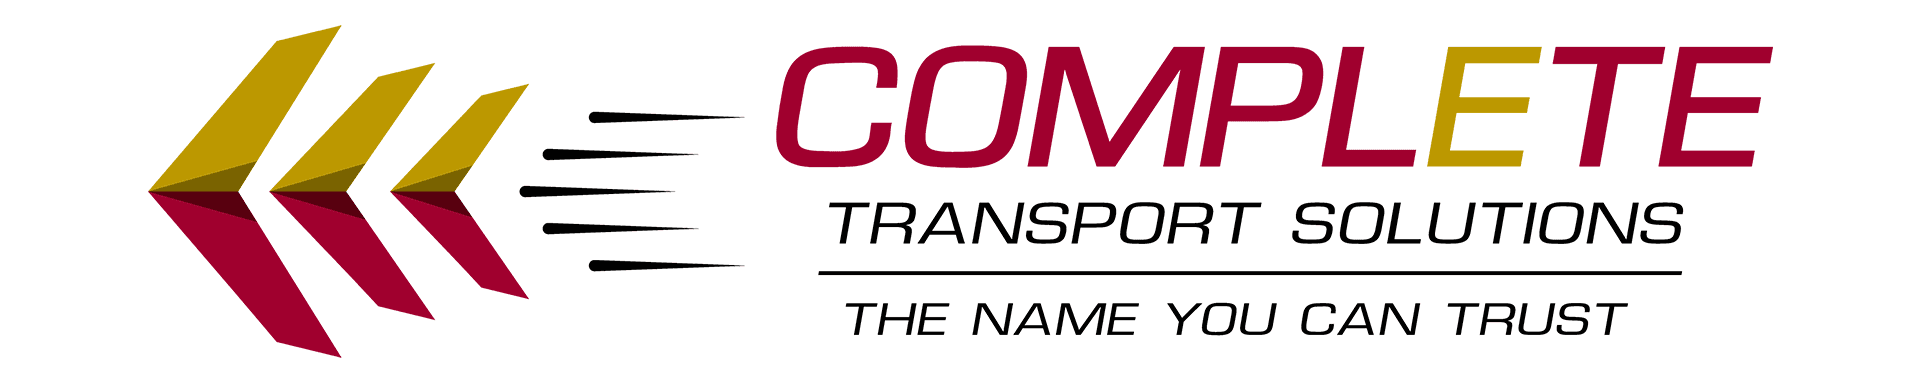 Complete Transport Solutions logo